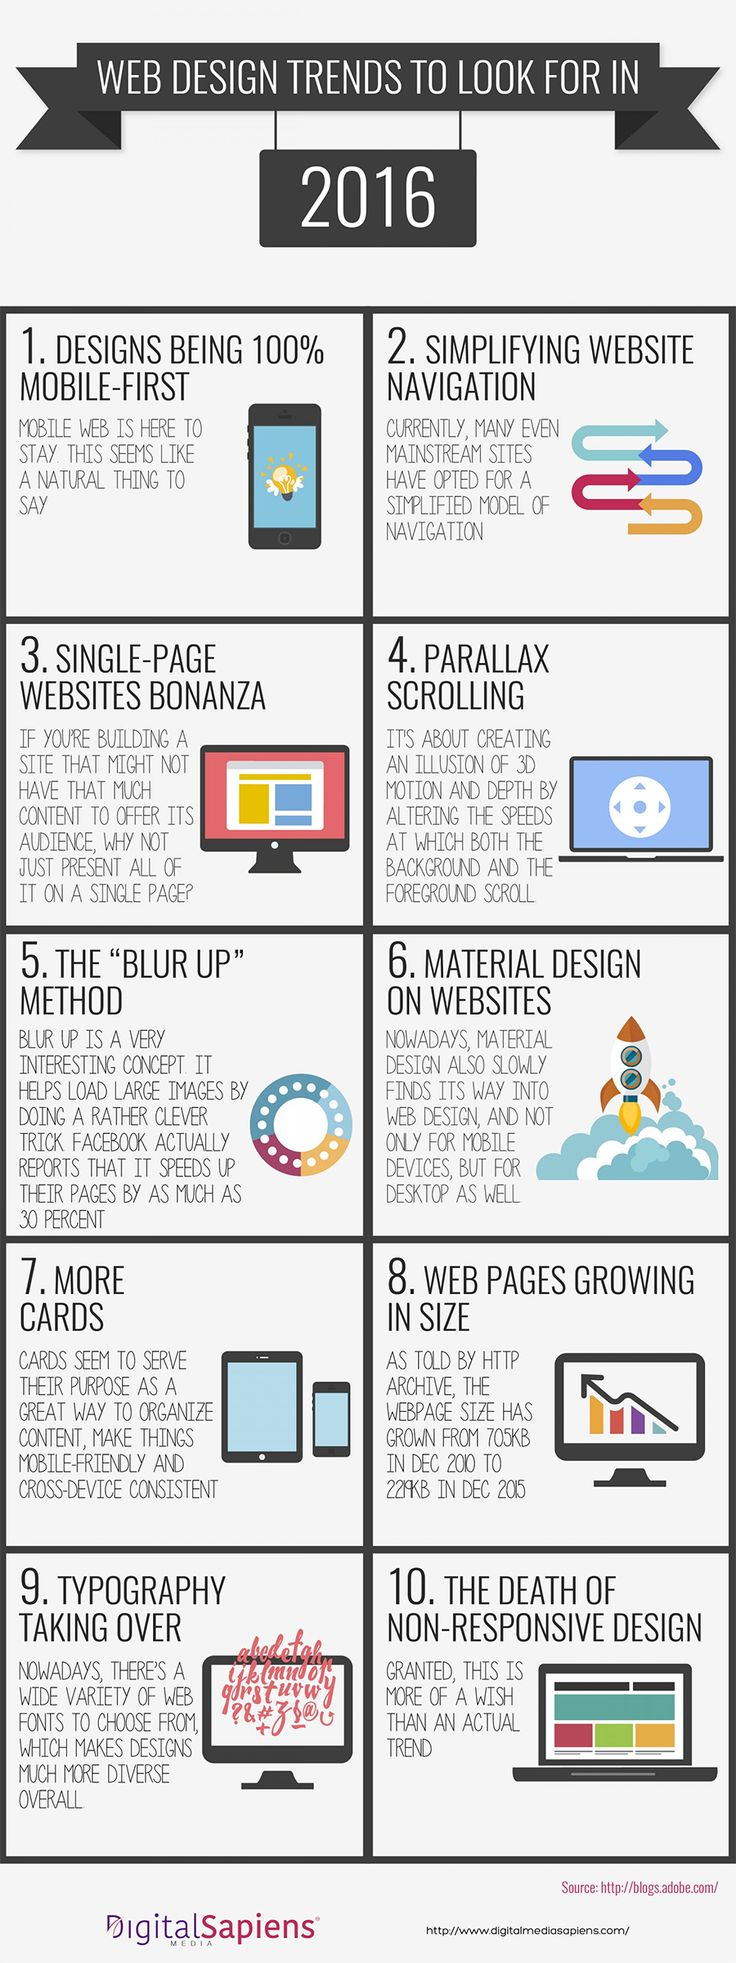 Web Design Trends To Look For In 2016 - Infographic